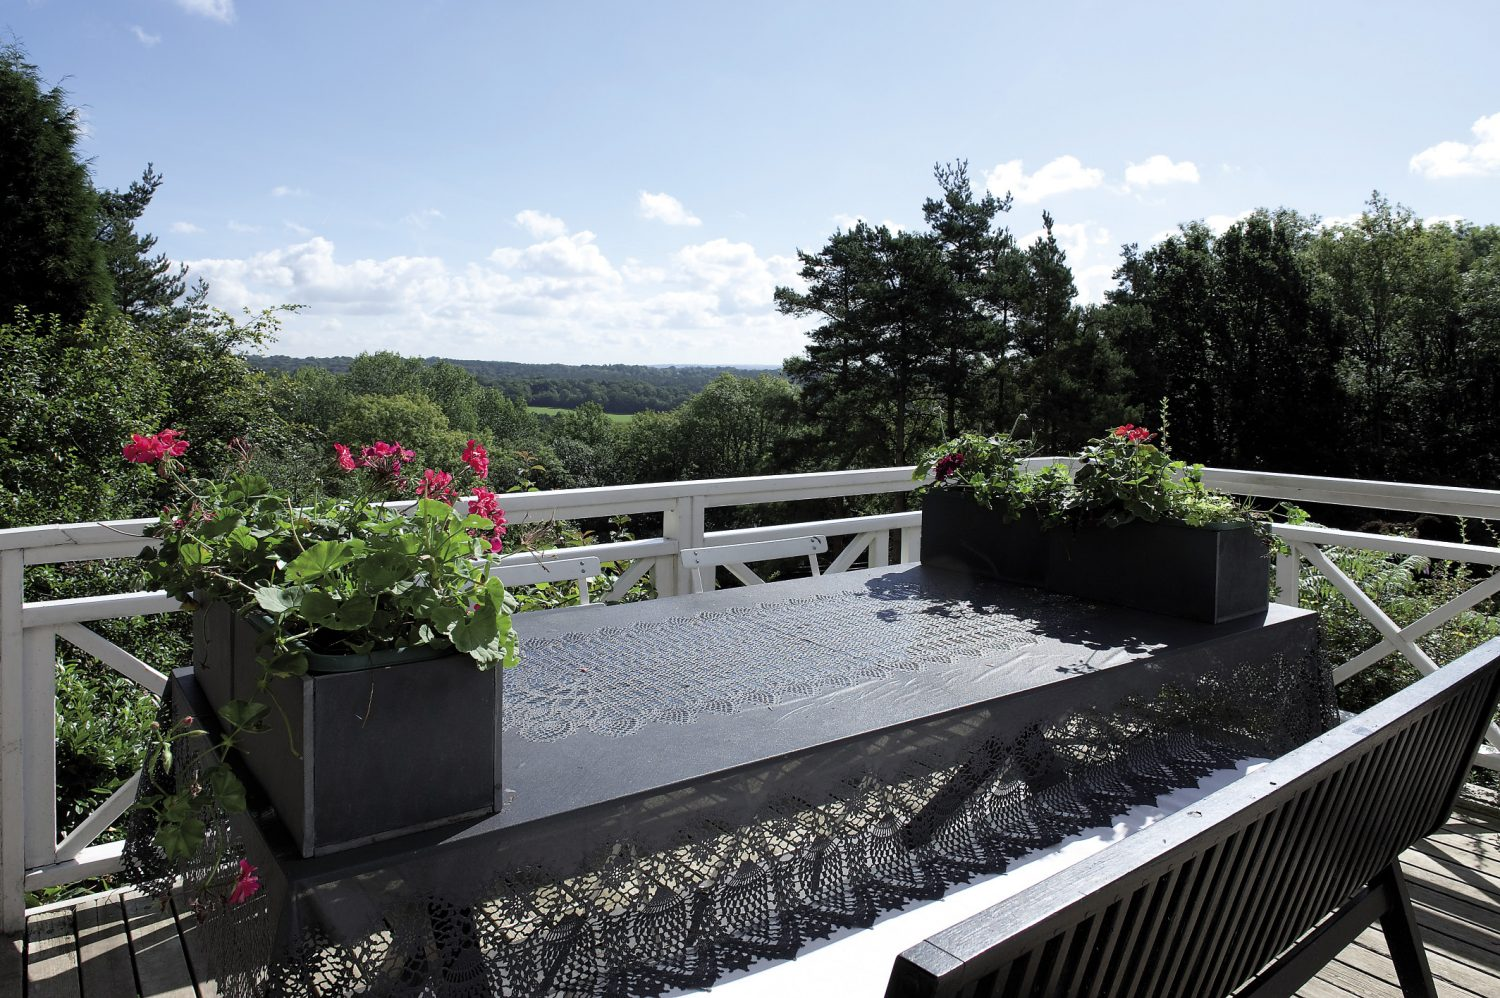 """Before we enter the house we follow Andrew to the terrace at the rear of the property. """"This is what sold the place to me,"""" he says, gesturing towards what is an incredible view across the Ashdown Forest. """"I saw this and knew I'd found my house."""""""